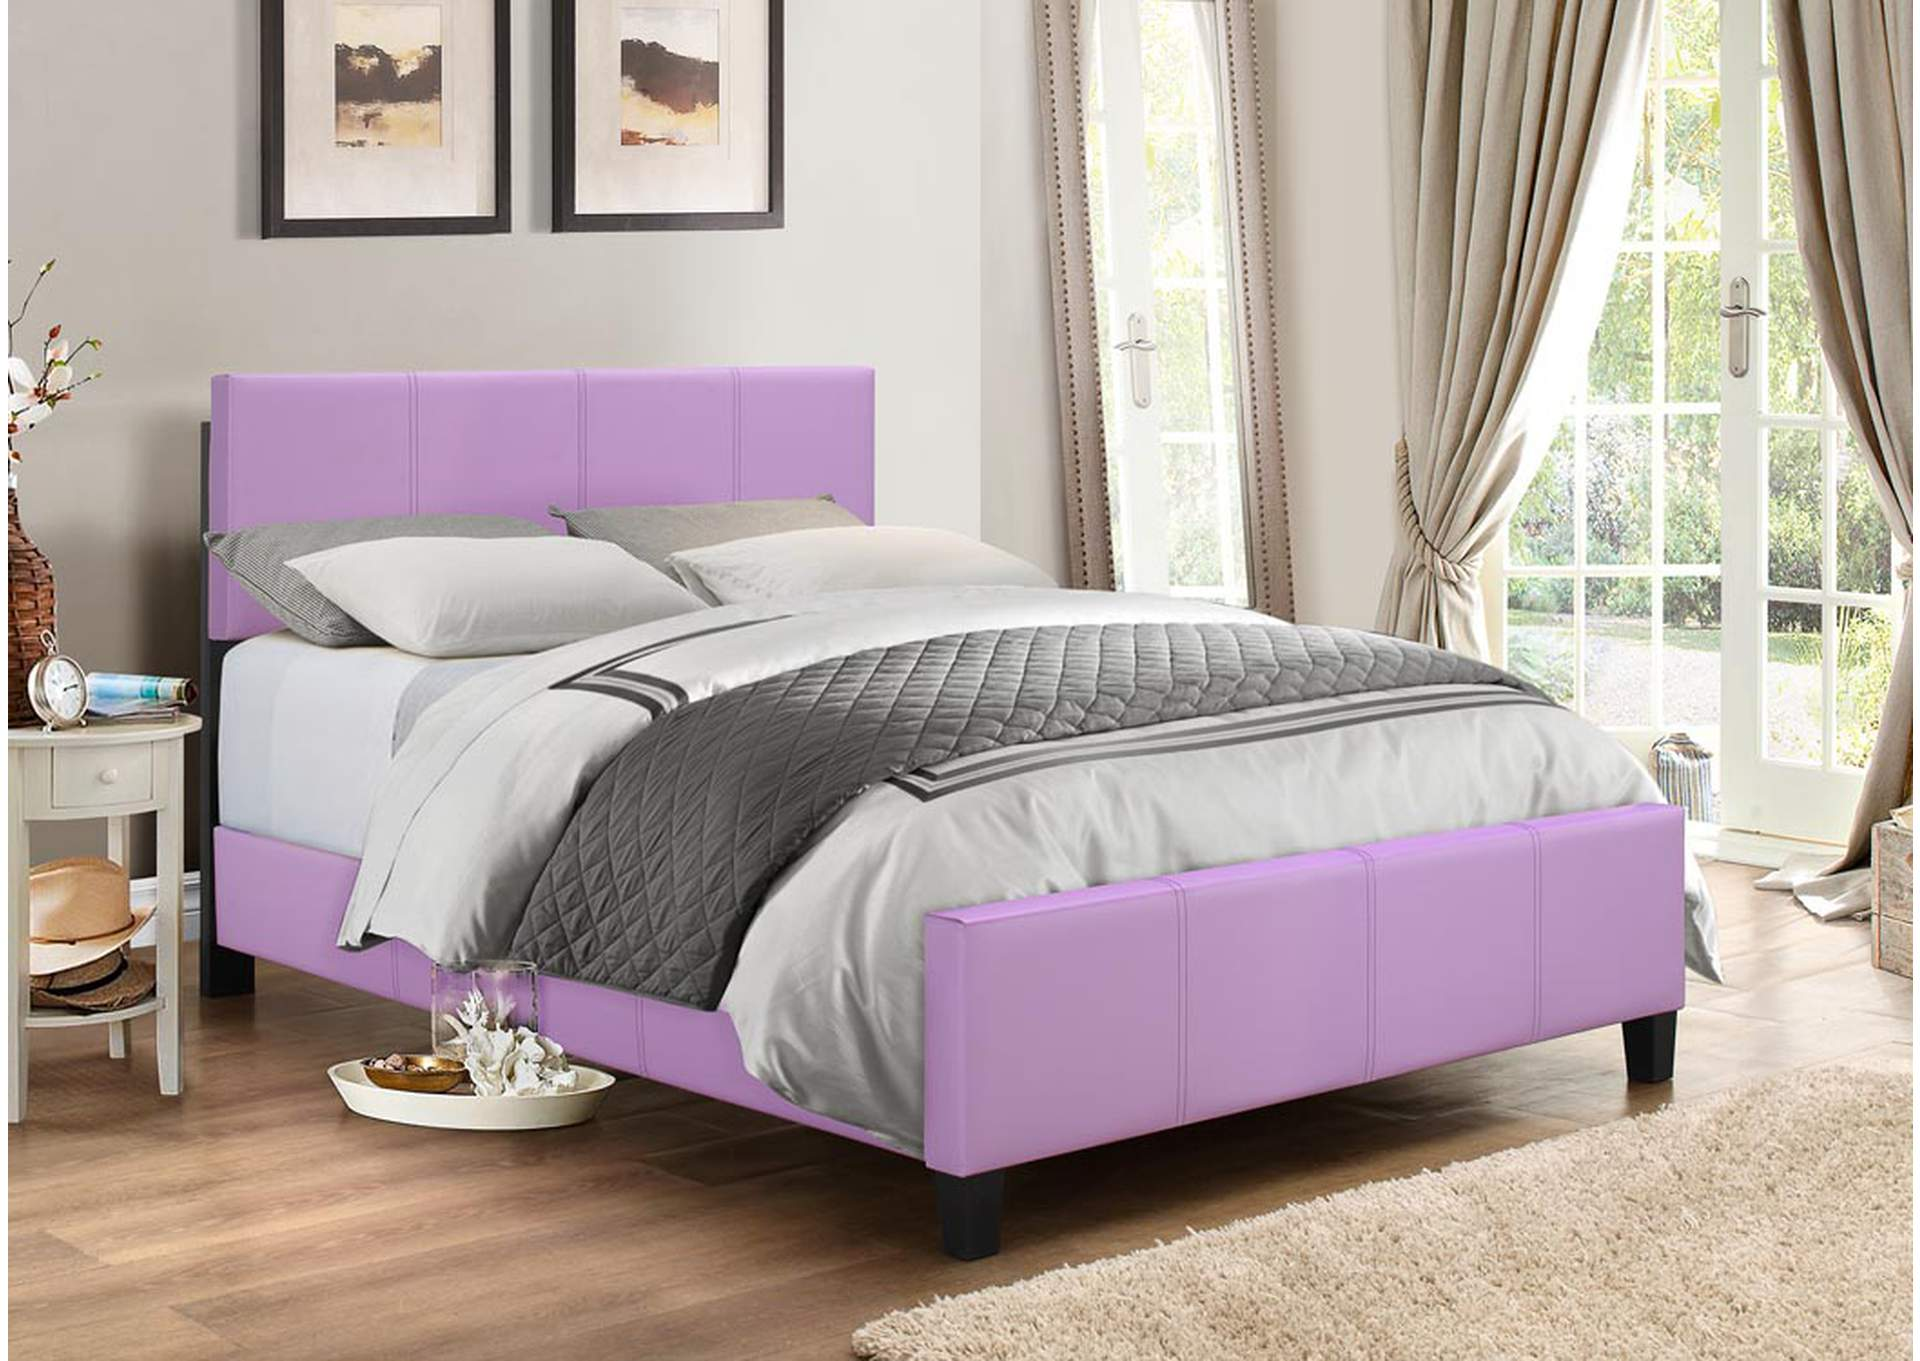 Zenfield Lilac Panel Full Bed,Global Trading